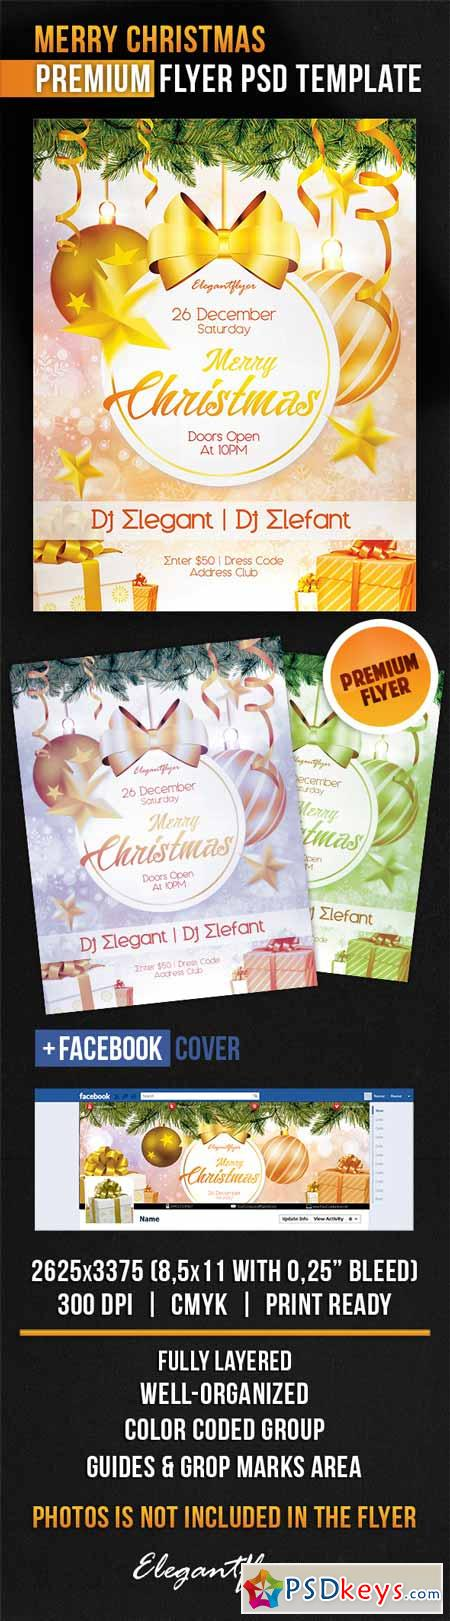 Merry Christmas – Flyer PSD Template + Facebook Cover 3